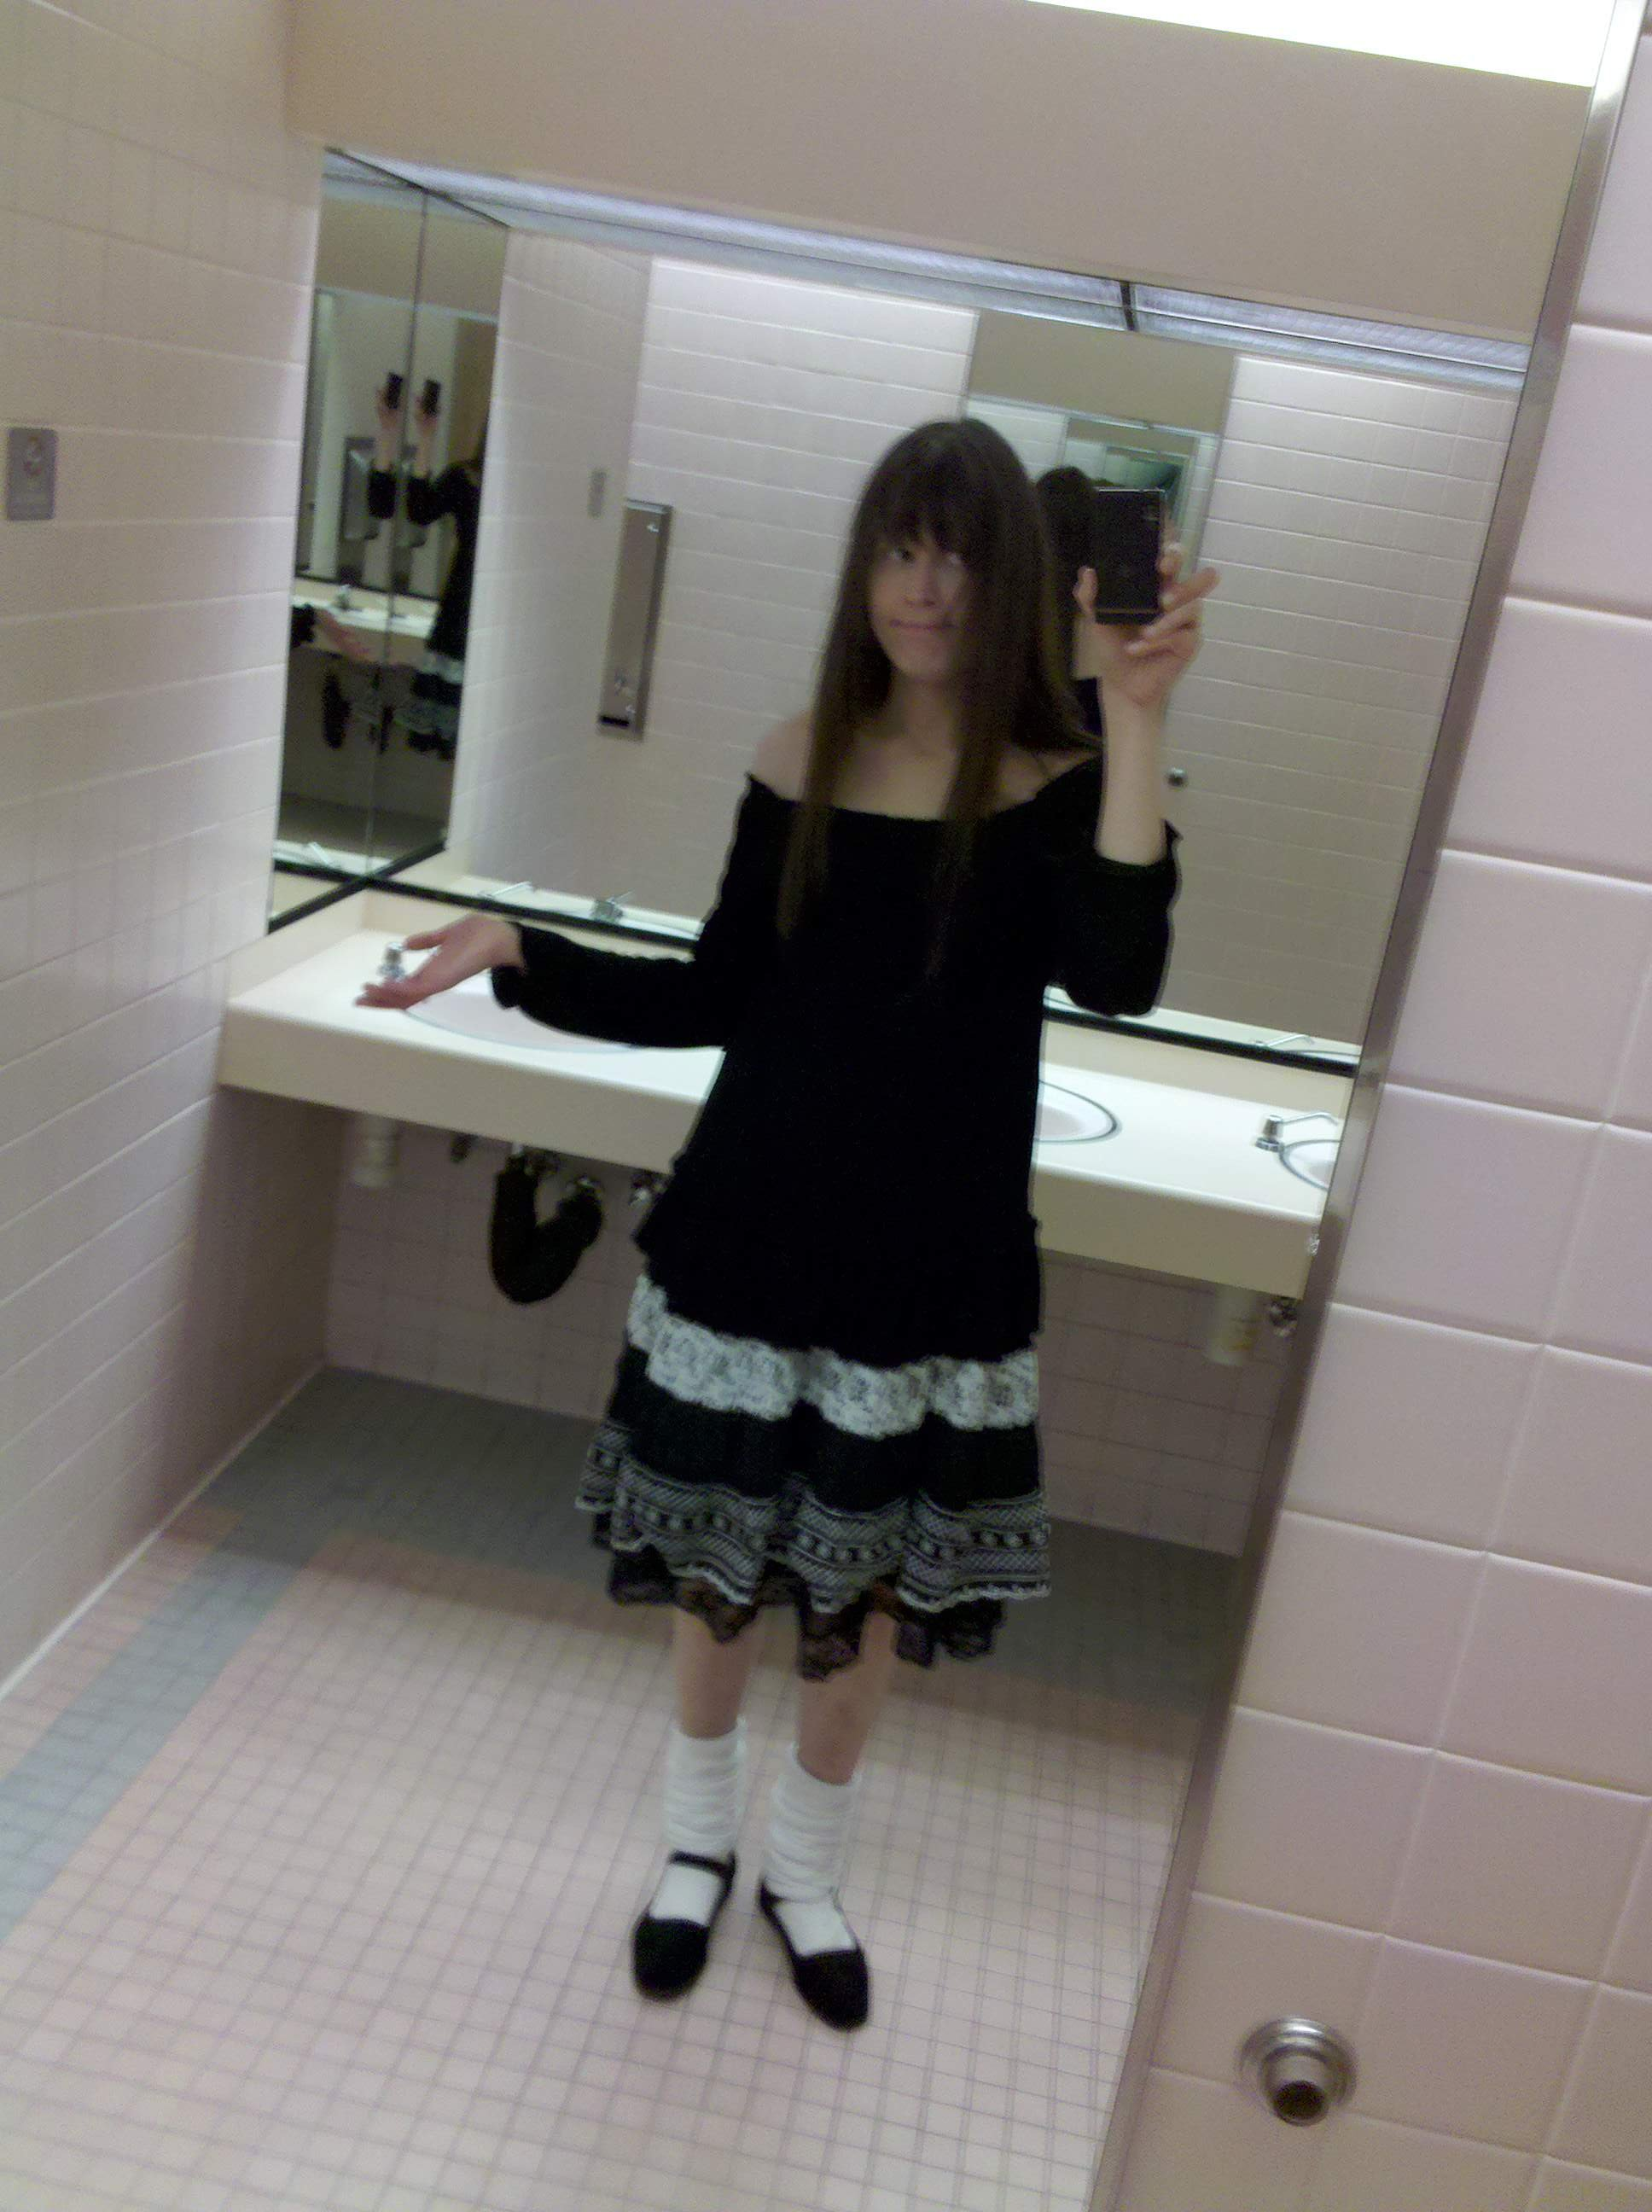 Me in a bathroom 2